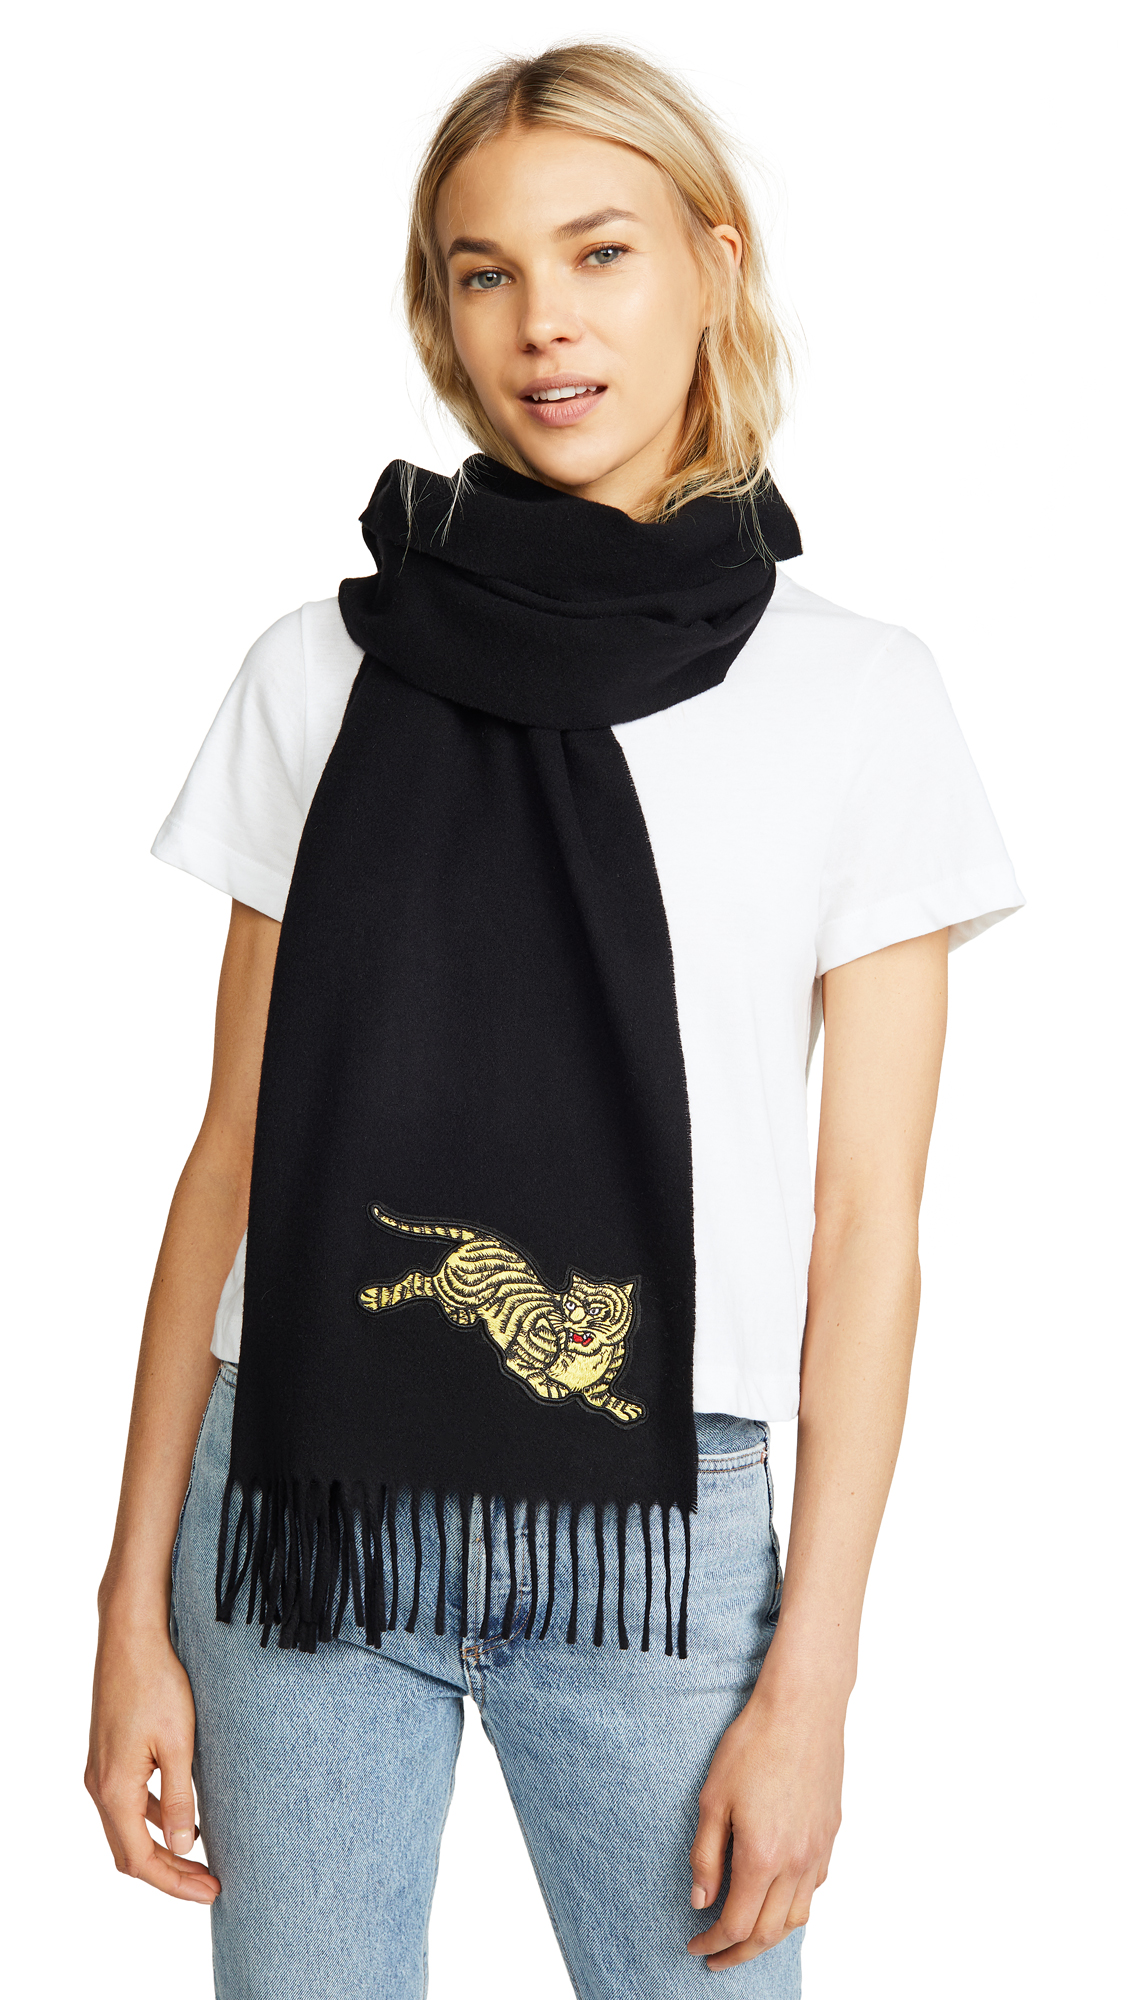 JUMPING TIGER STOLE SCARF